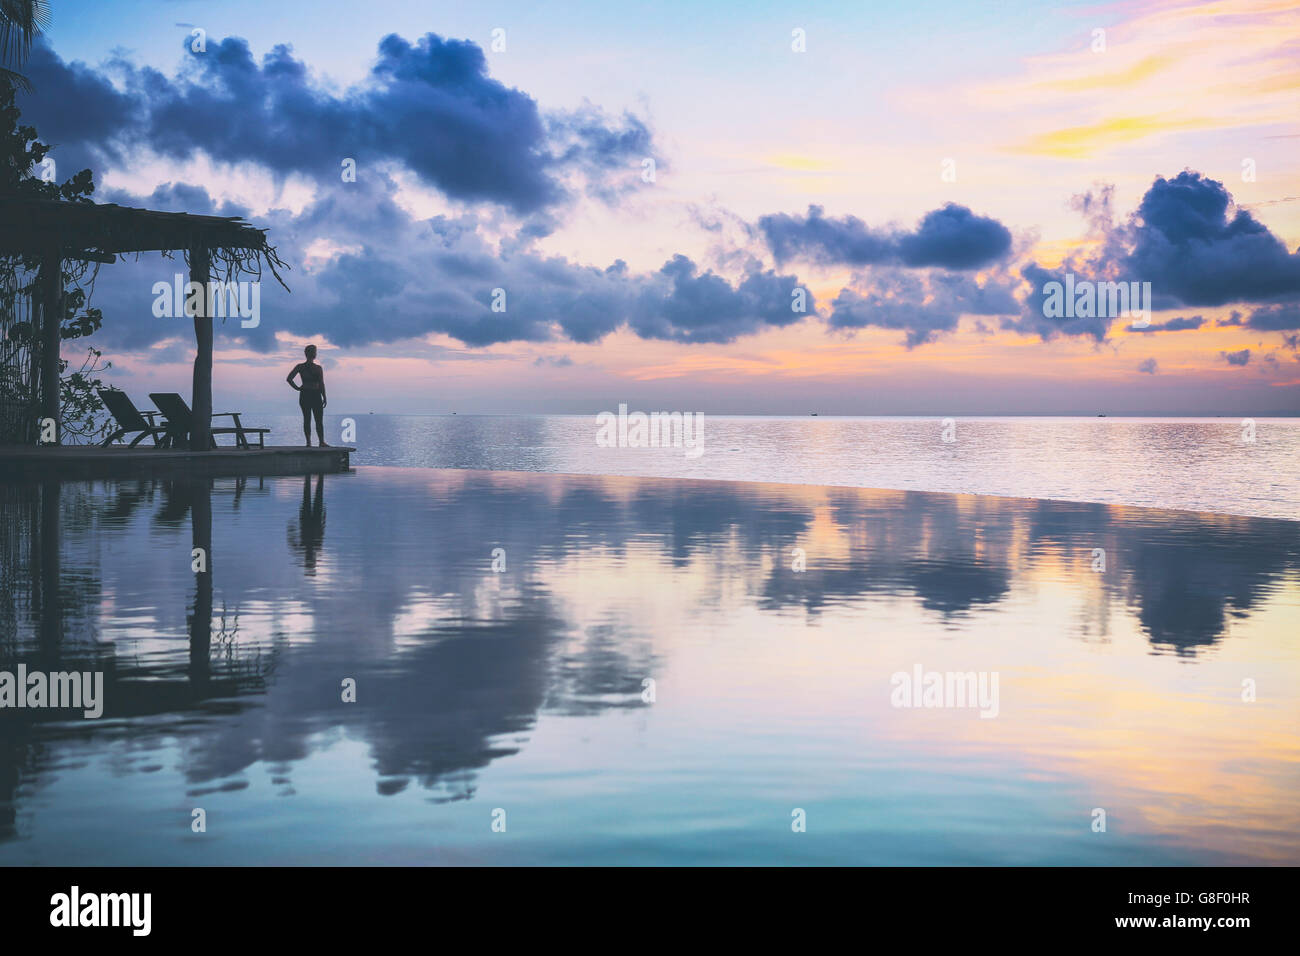 Dawn reflected in an infinity pool - Stock Image